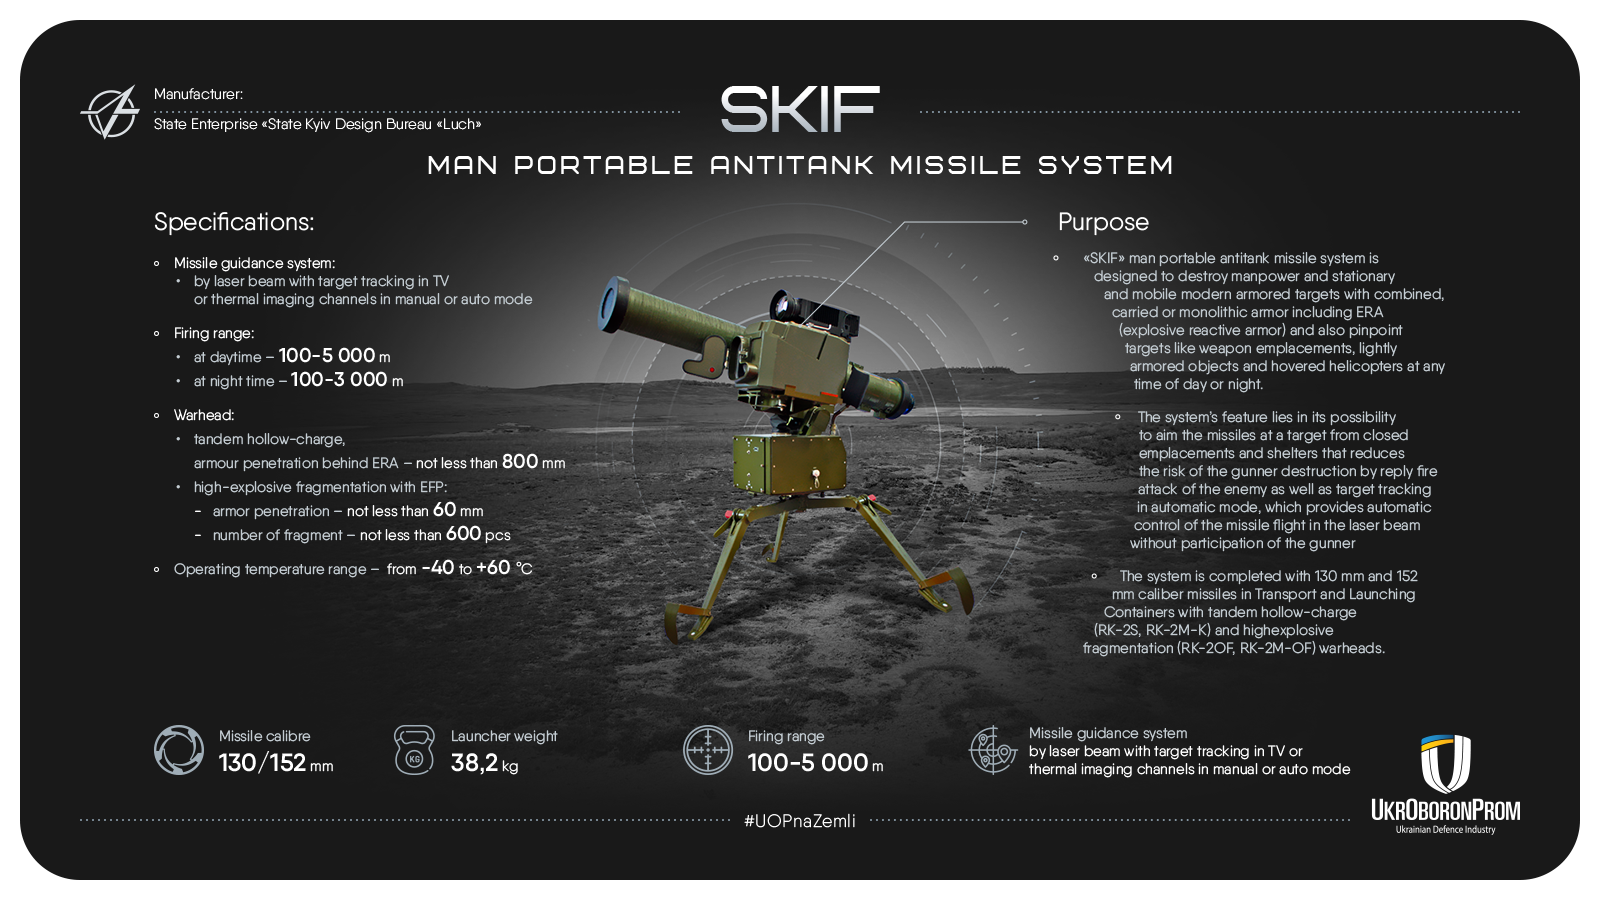 Skith portable anti-tank missile systems